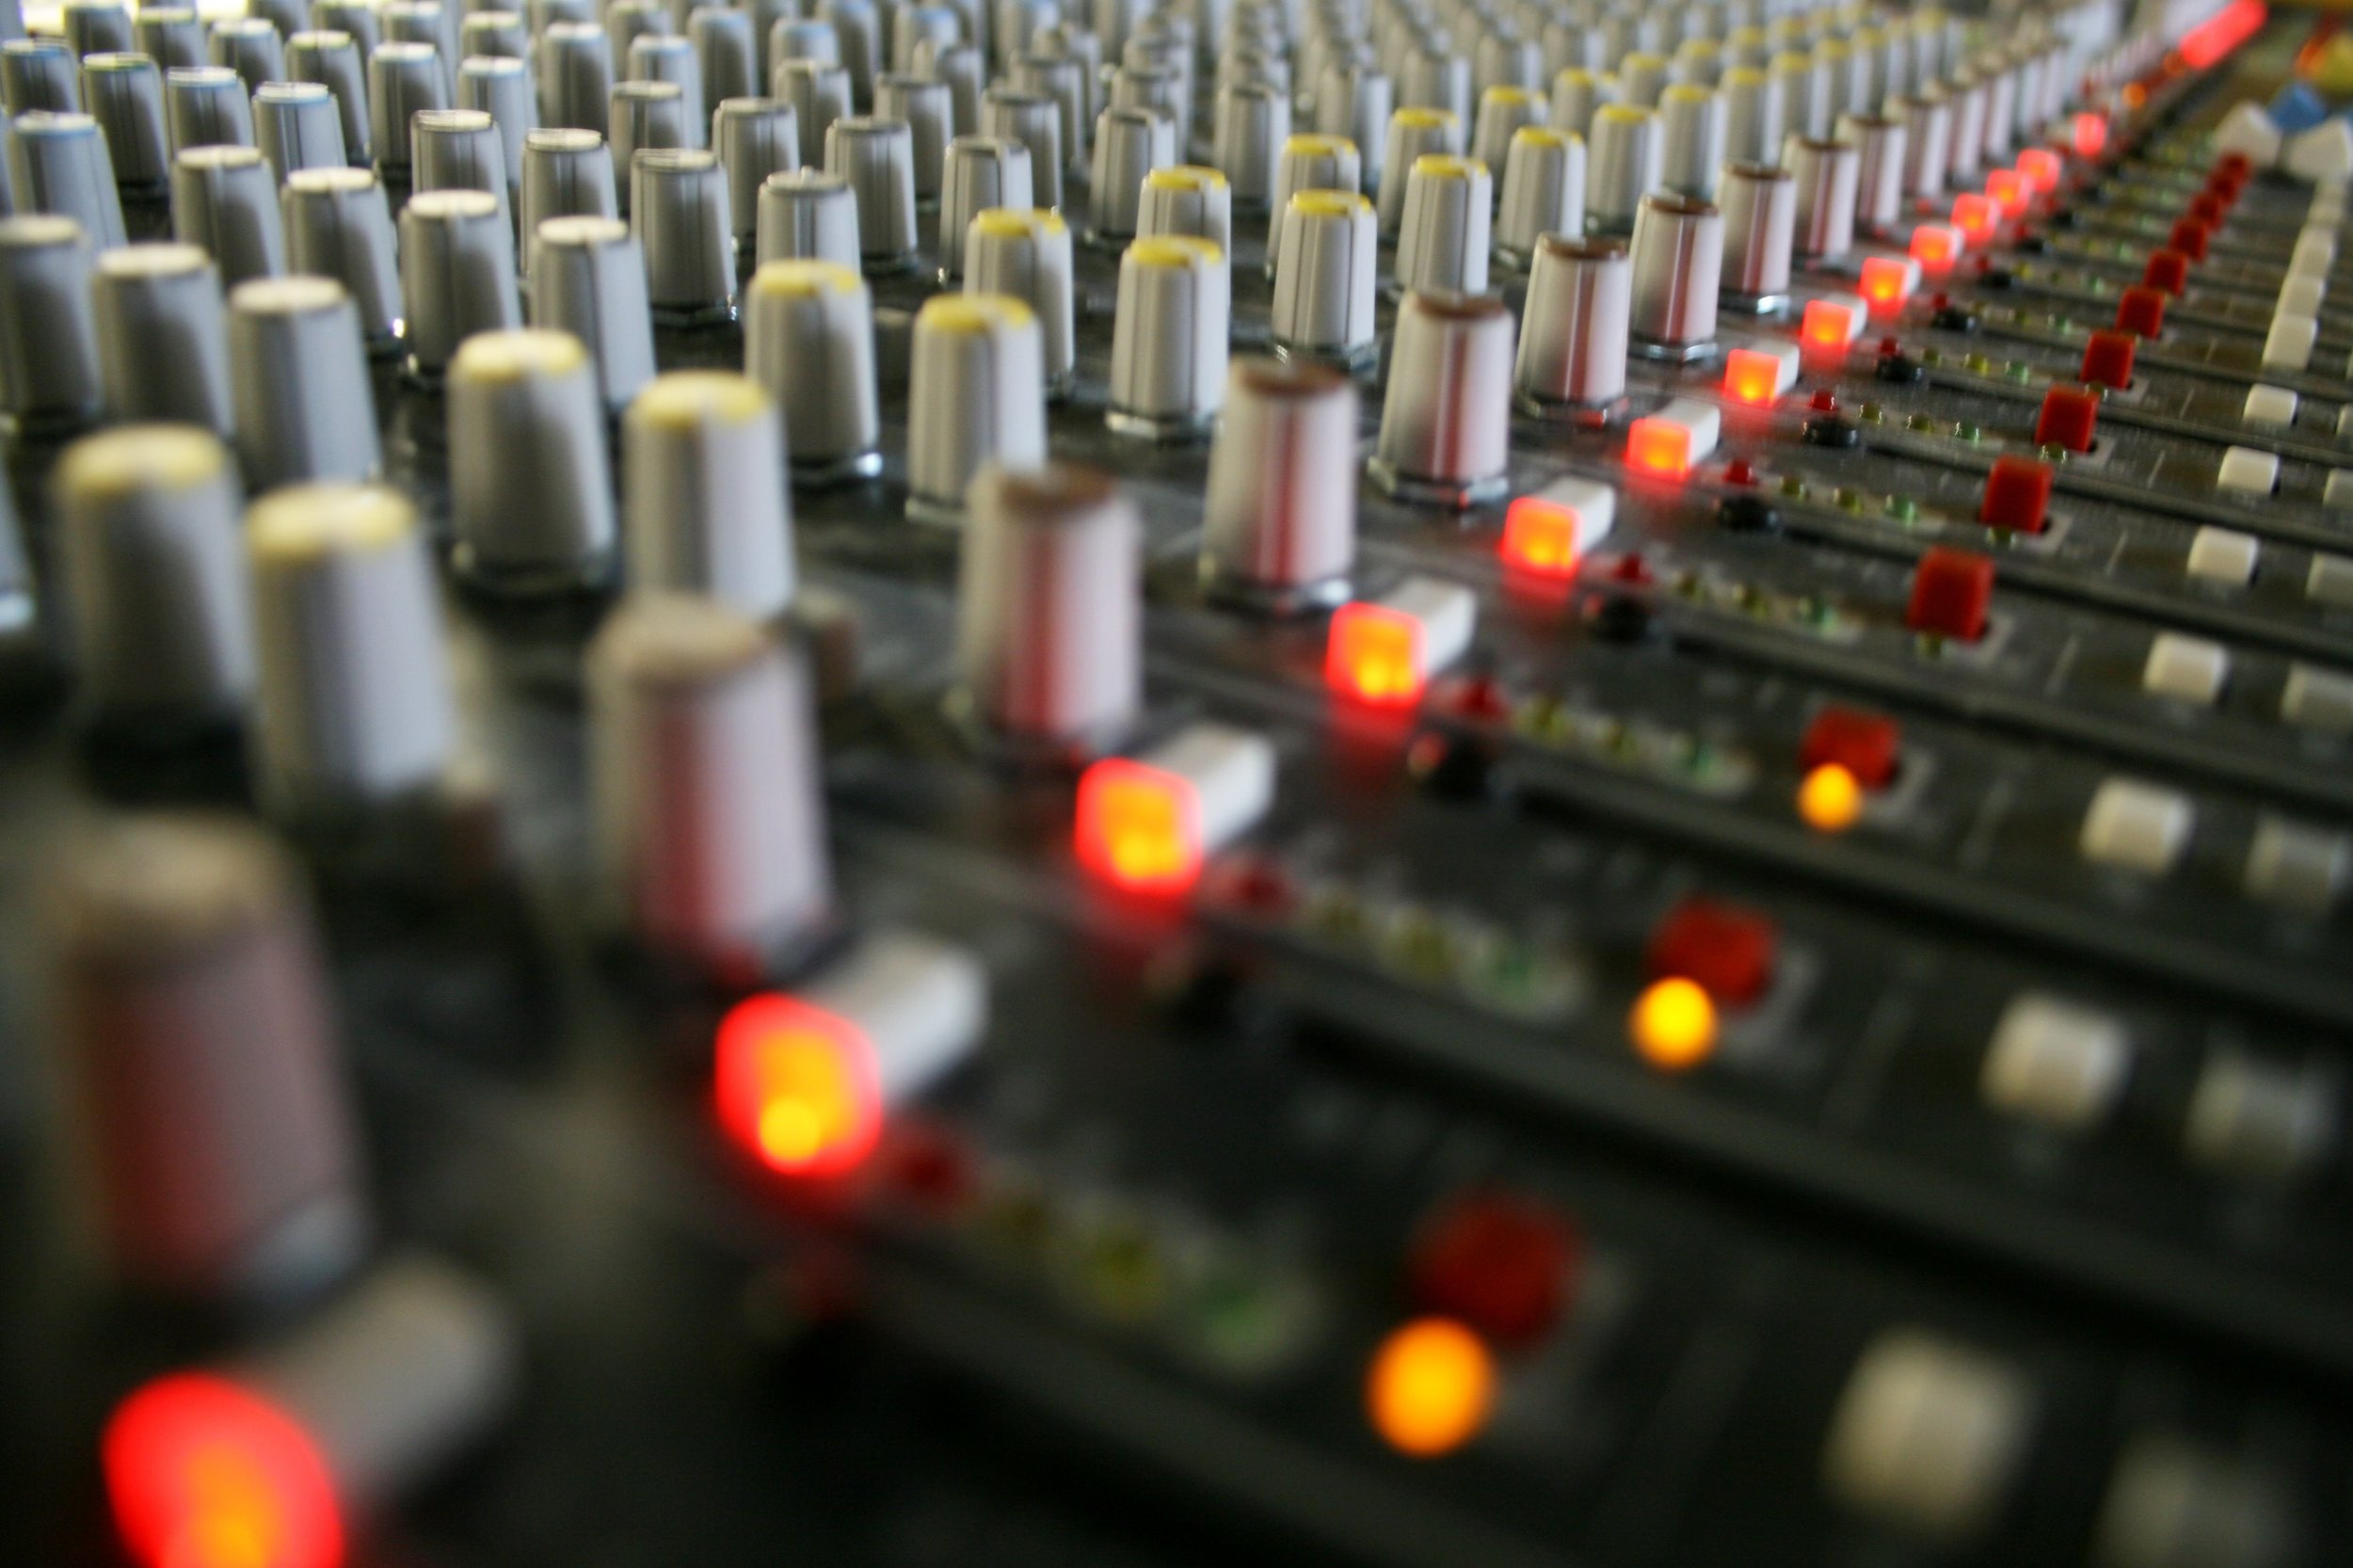 Advanced Mixing Lab - Reinforce all of the new Level 3 mixing techniques you have learned by applying them to a second song.